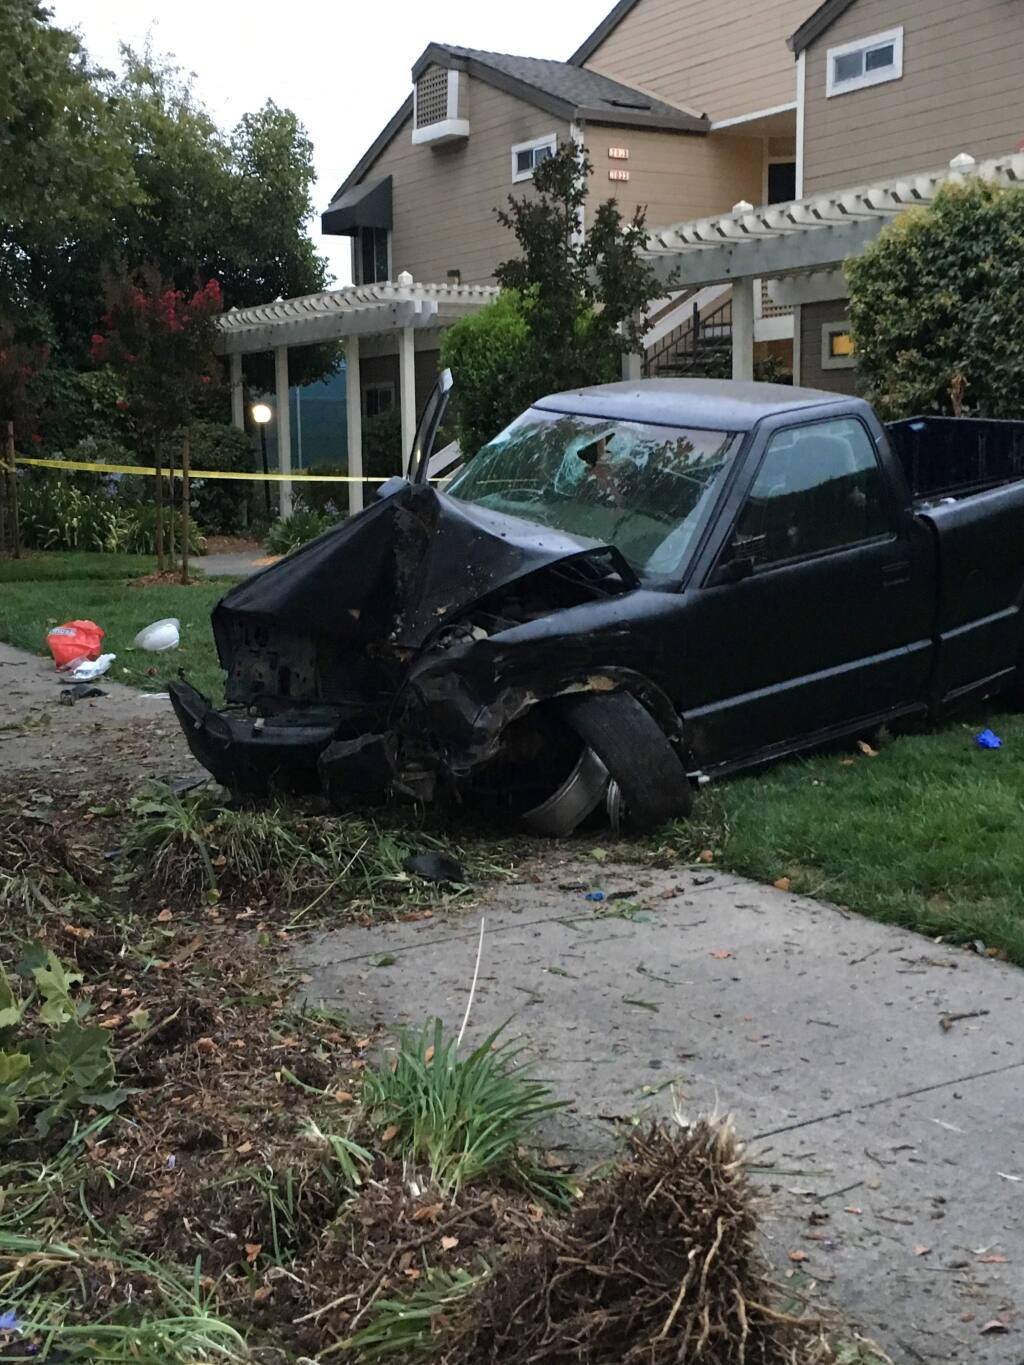 A Santa Rosa man was seriously injured when he crashed his pickup into a tree in the Piner Road area on Sunday, July 30, 2017. (COURTESY PHOTO)